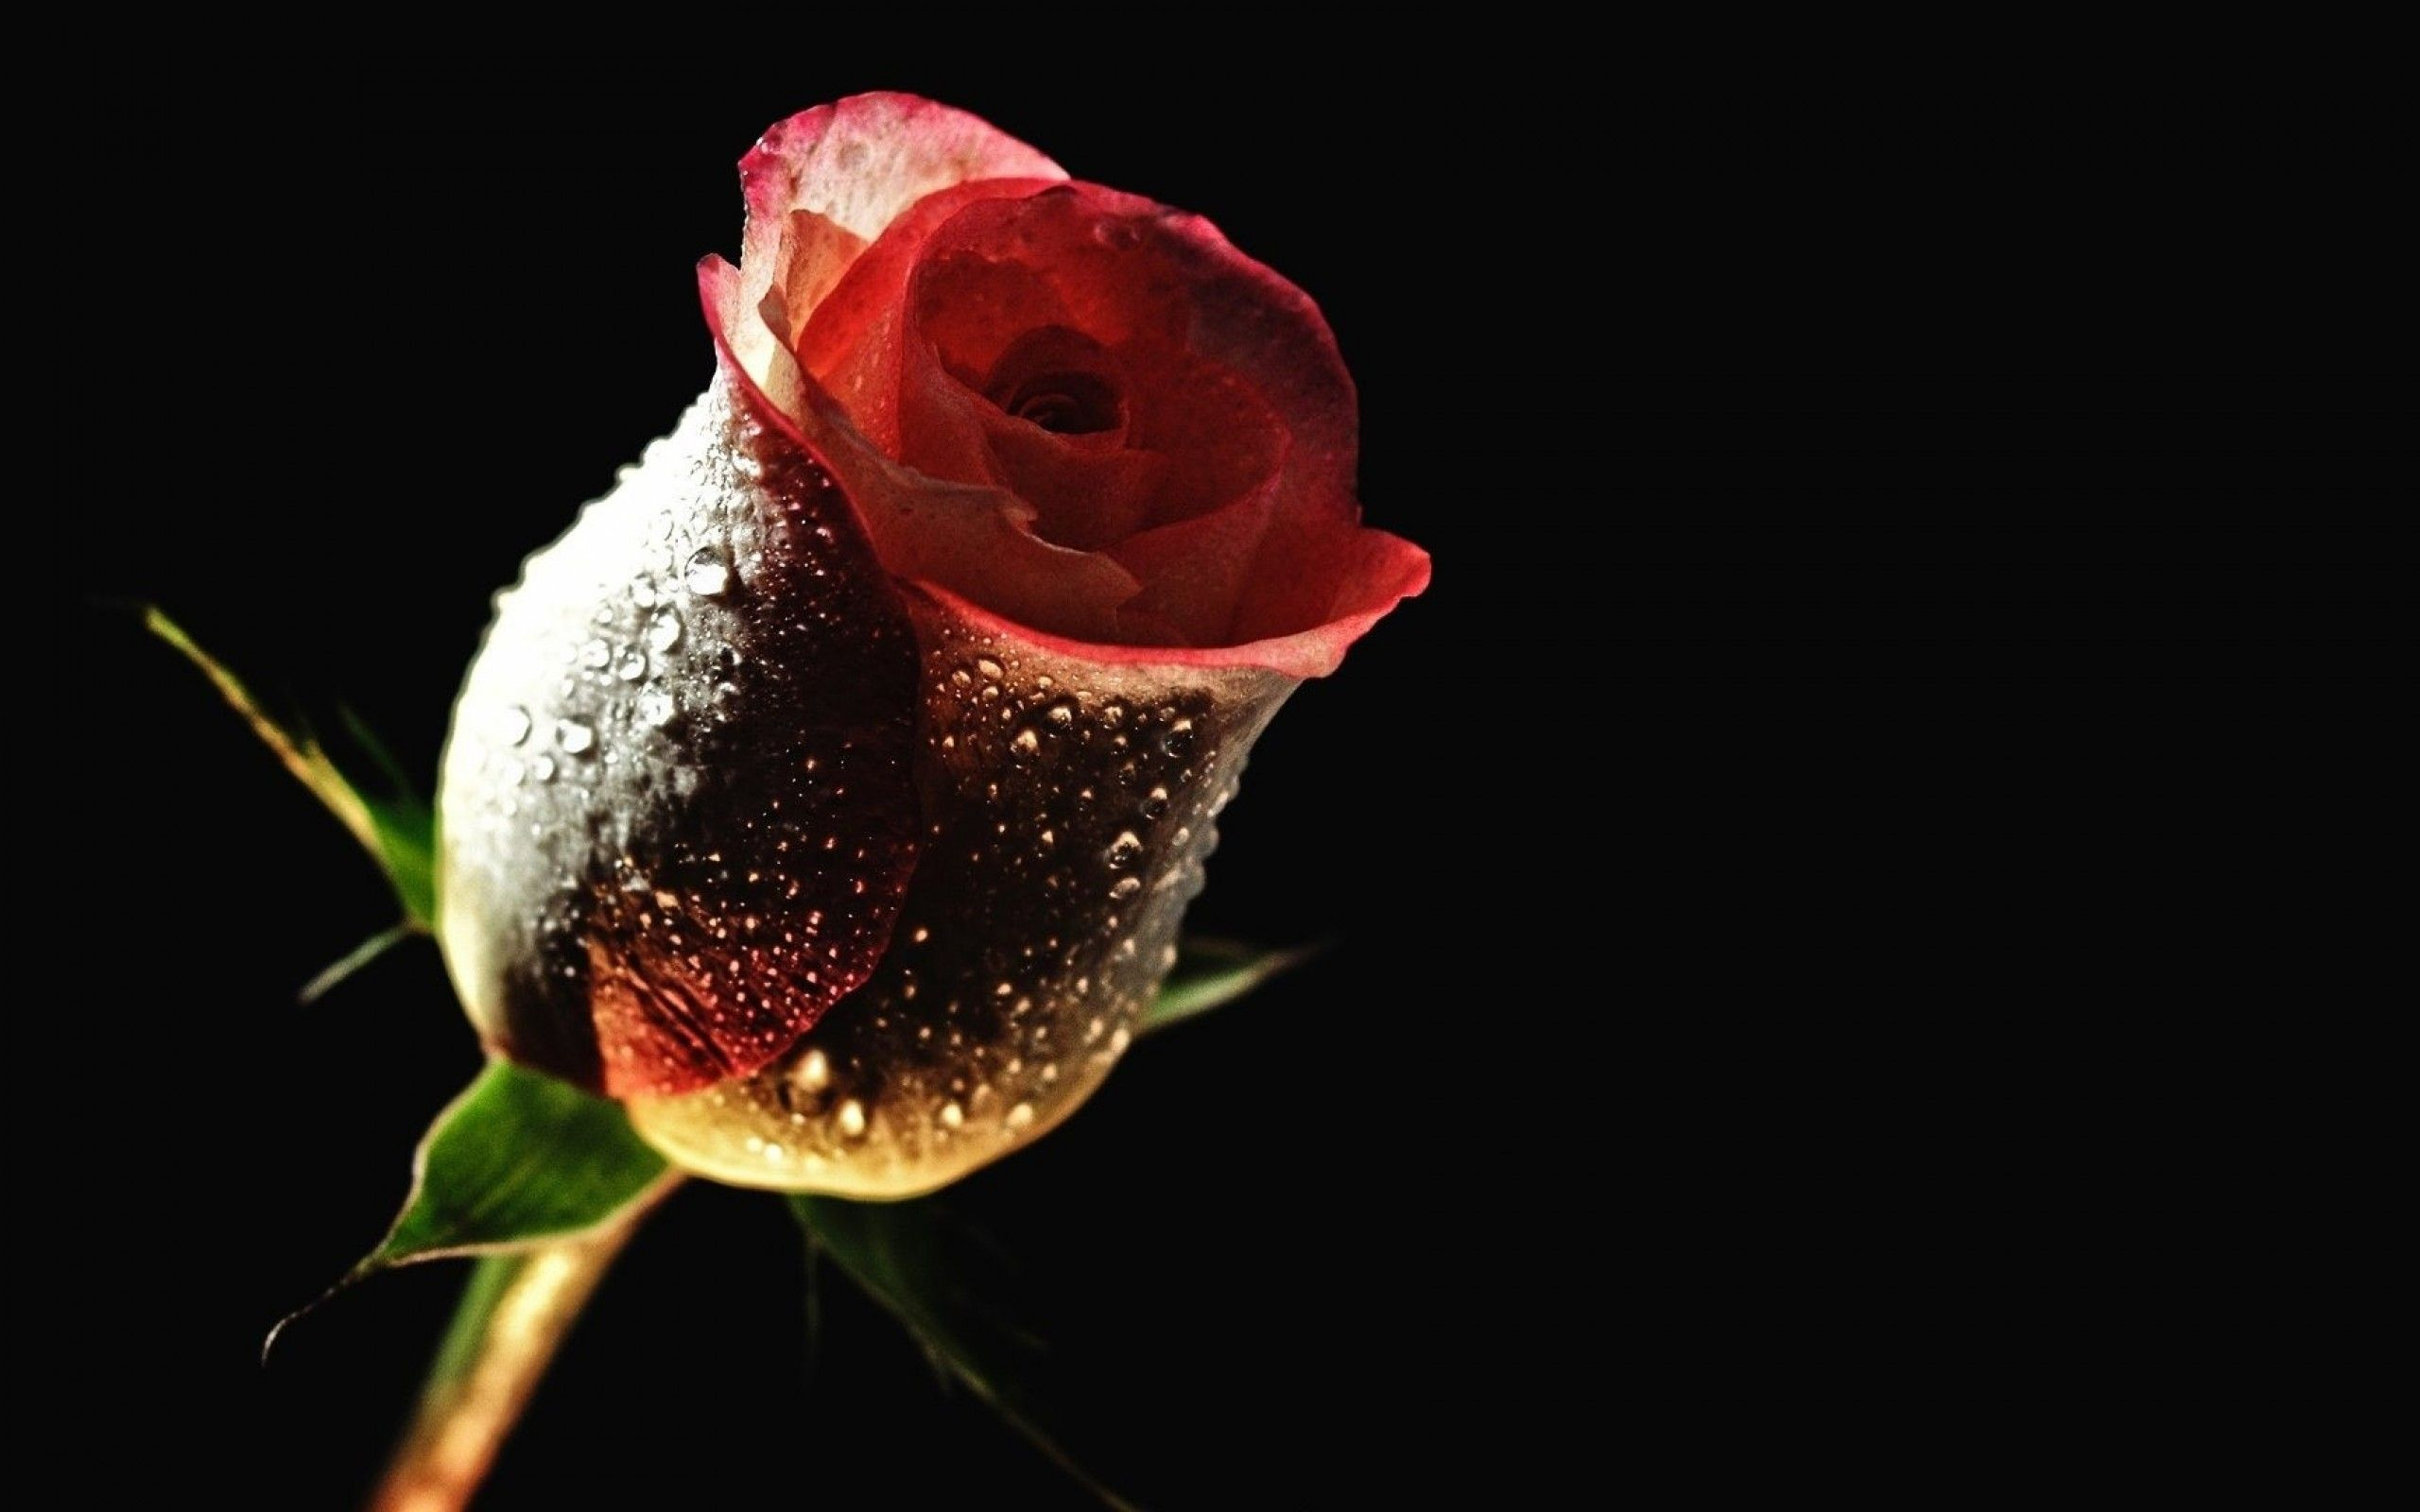 Red Rose In A Dark Room Hd Free Wallpaper Rose Flower Pictures Beautiful Red Roses Images Rose Flower Hd